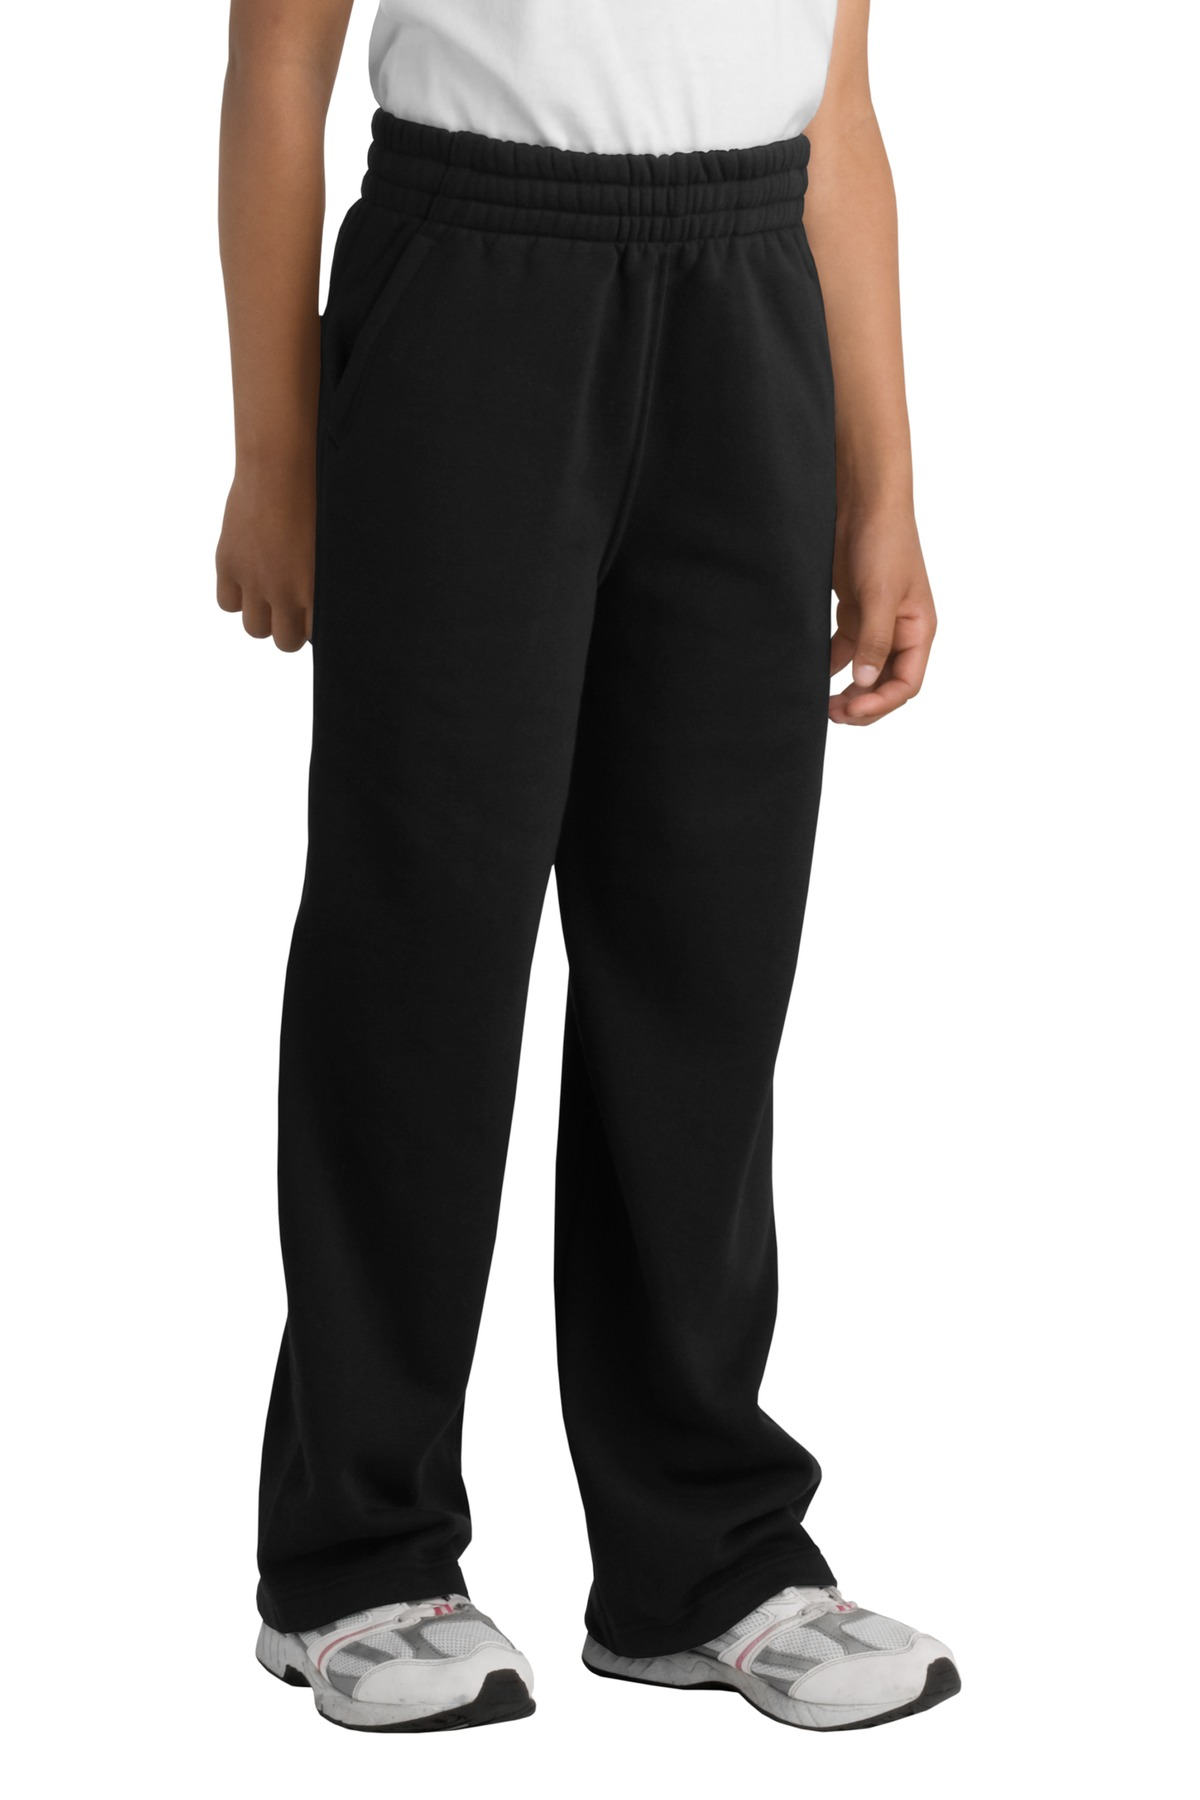 Sport-Tek ®  Youth Sweatpant. Y257